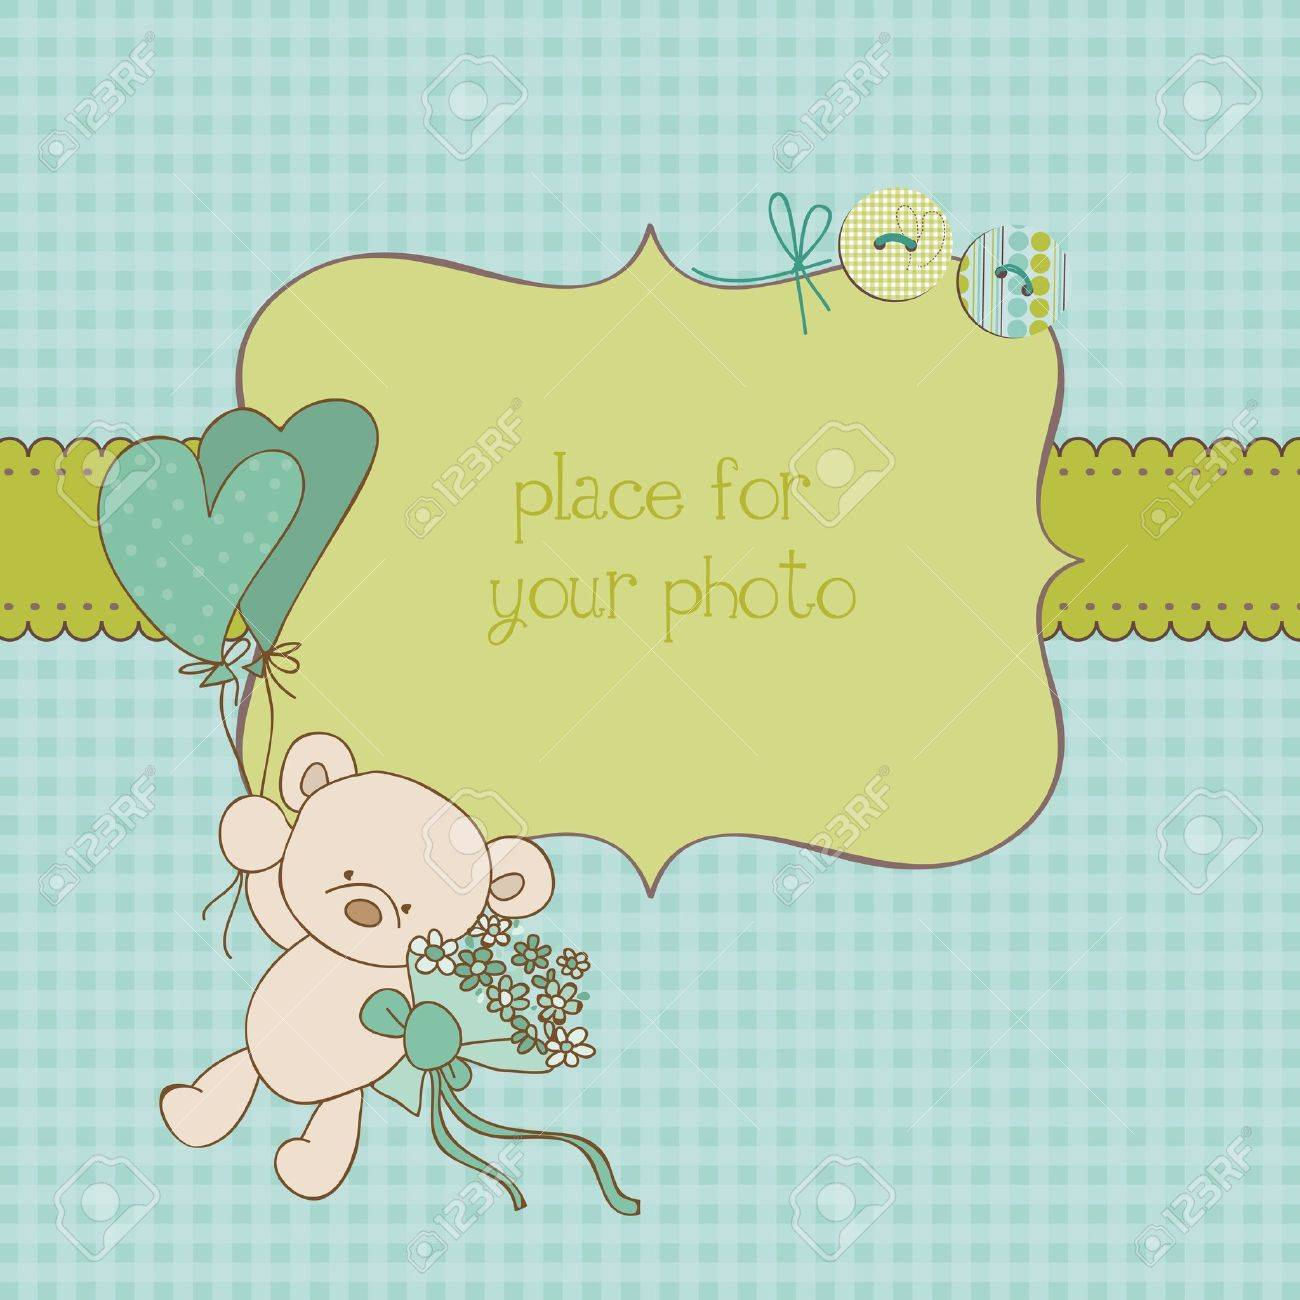 Baby Greeting Card with Photo Frame and place for your text in vector Stock Vector - 10462907